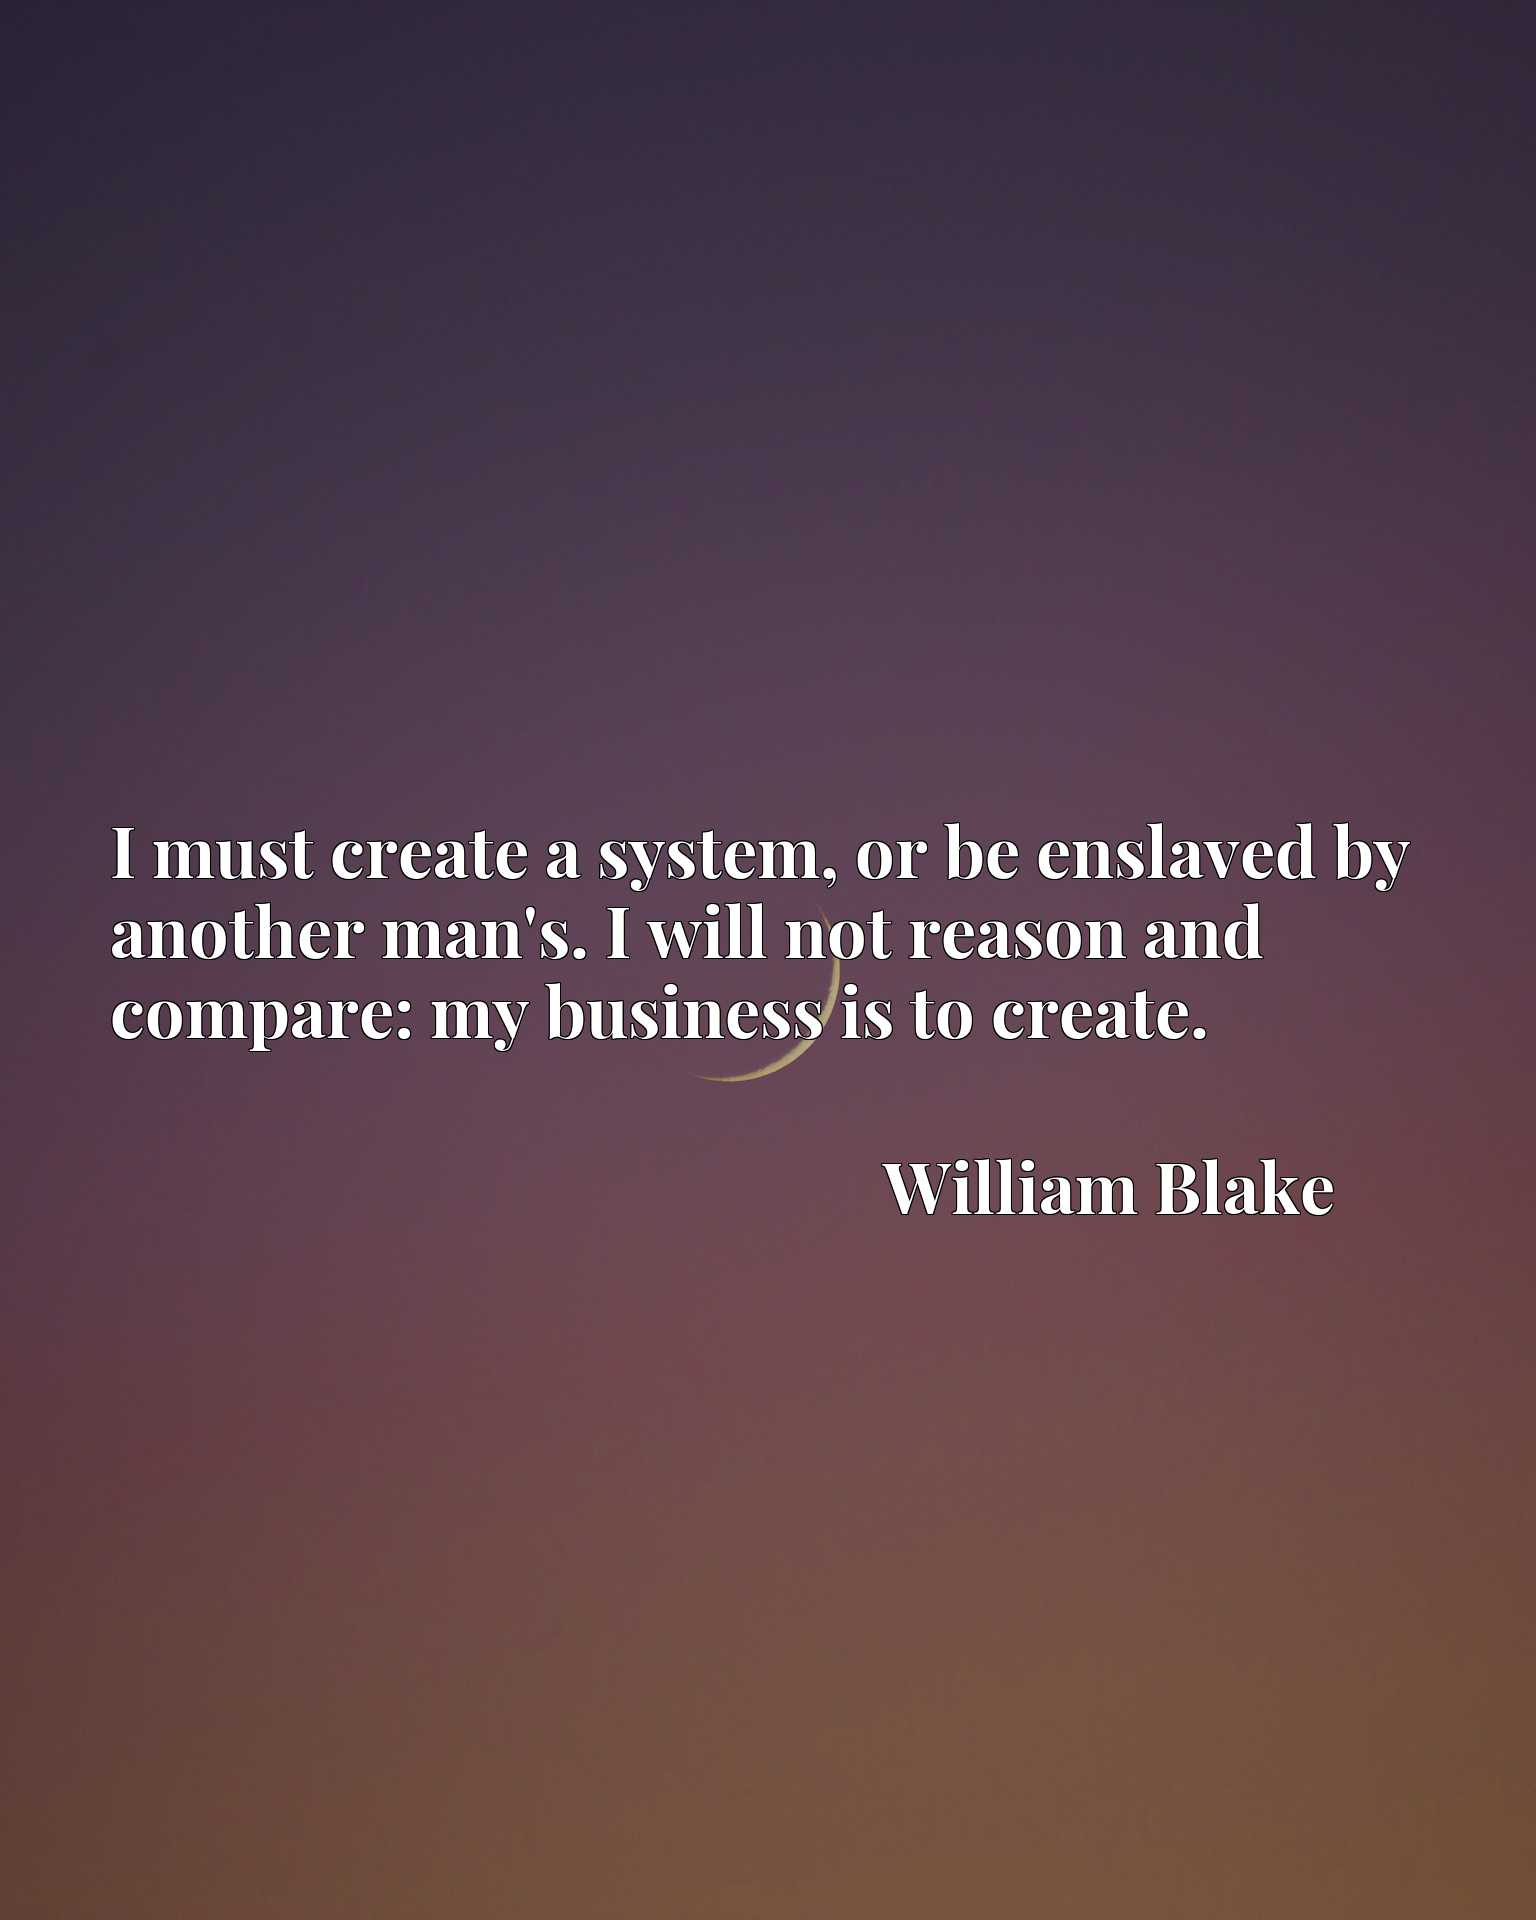 Quote Picture :I must create a system, or be enslaved by another man's. I will not reason and compare: my business is to create.